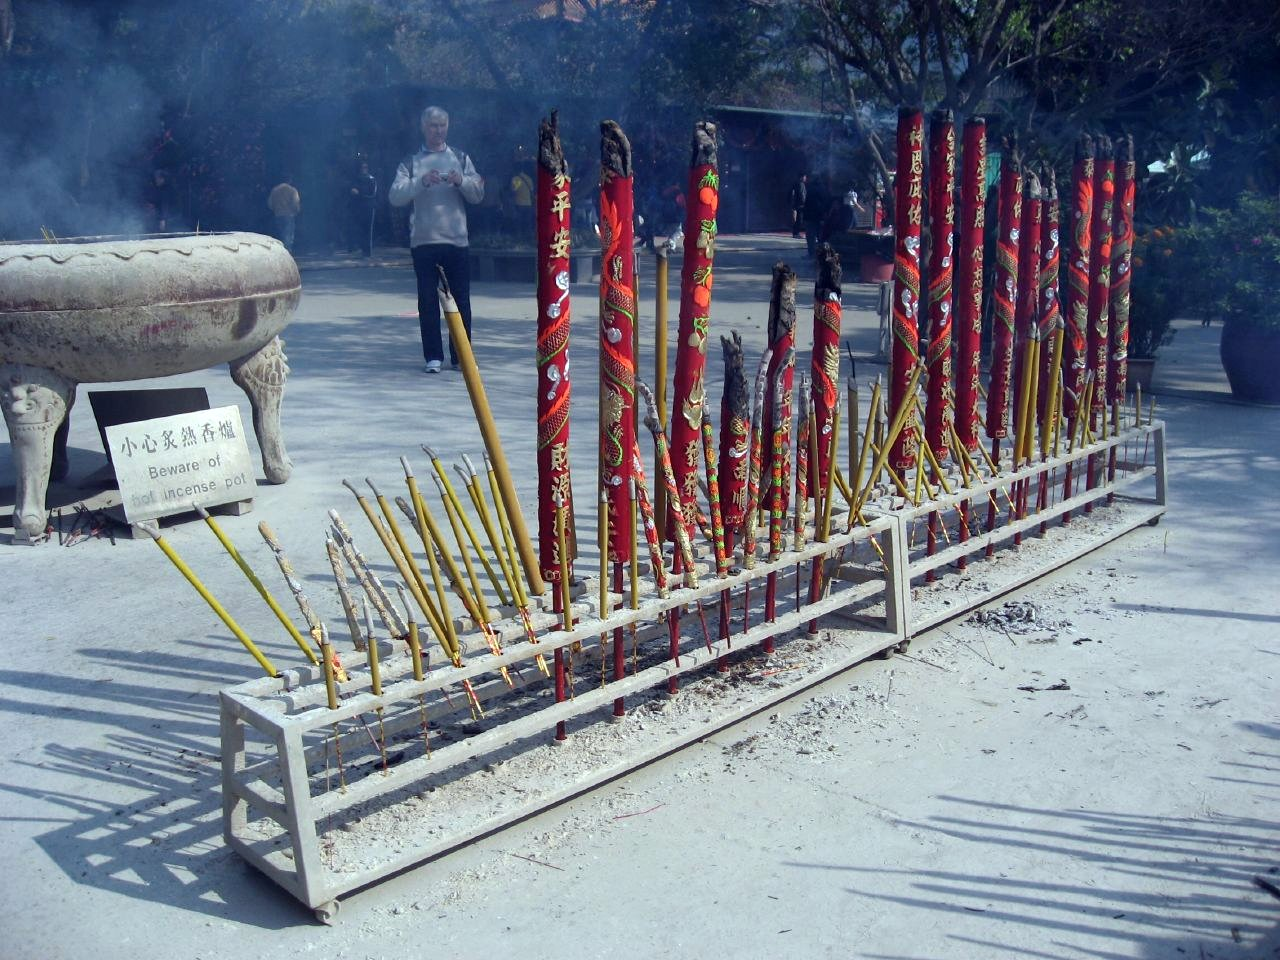 Giant burning incense sticks outside a Buddhist temple in Hong Kong.